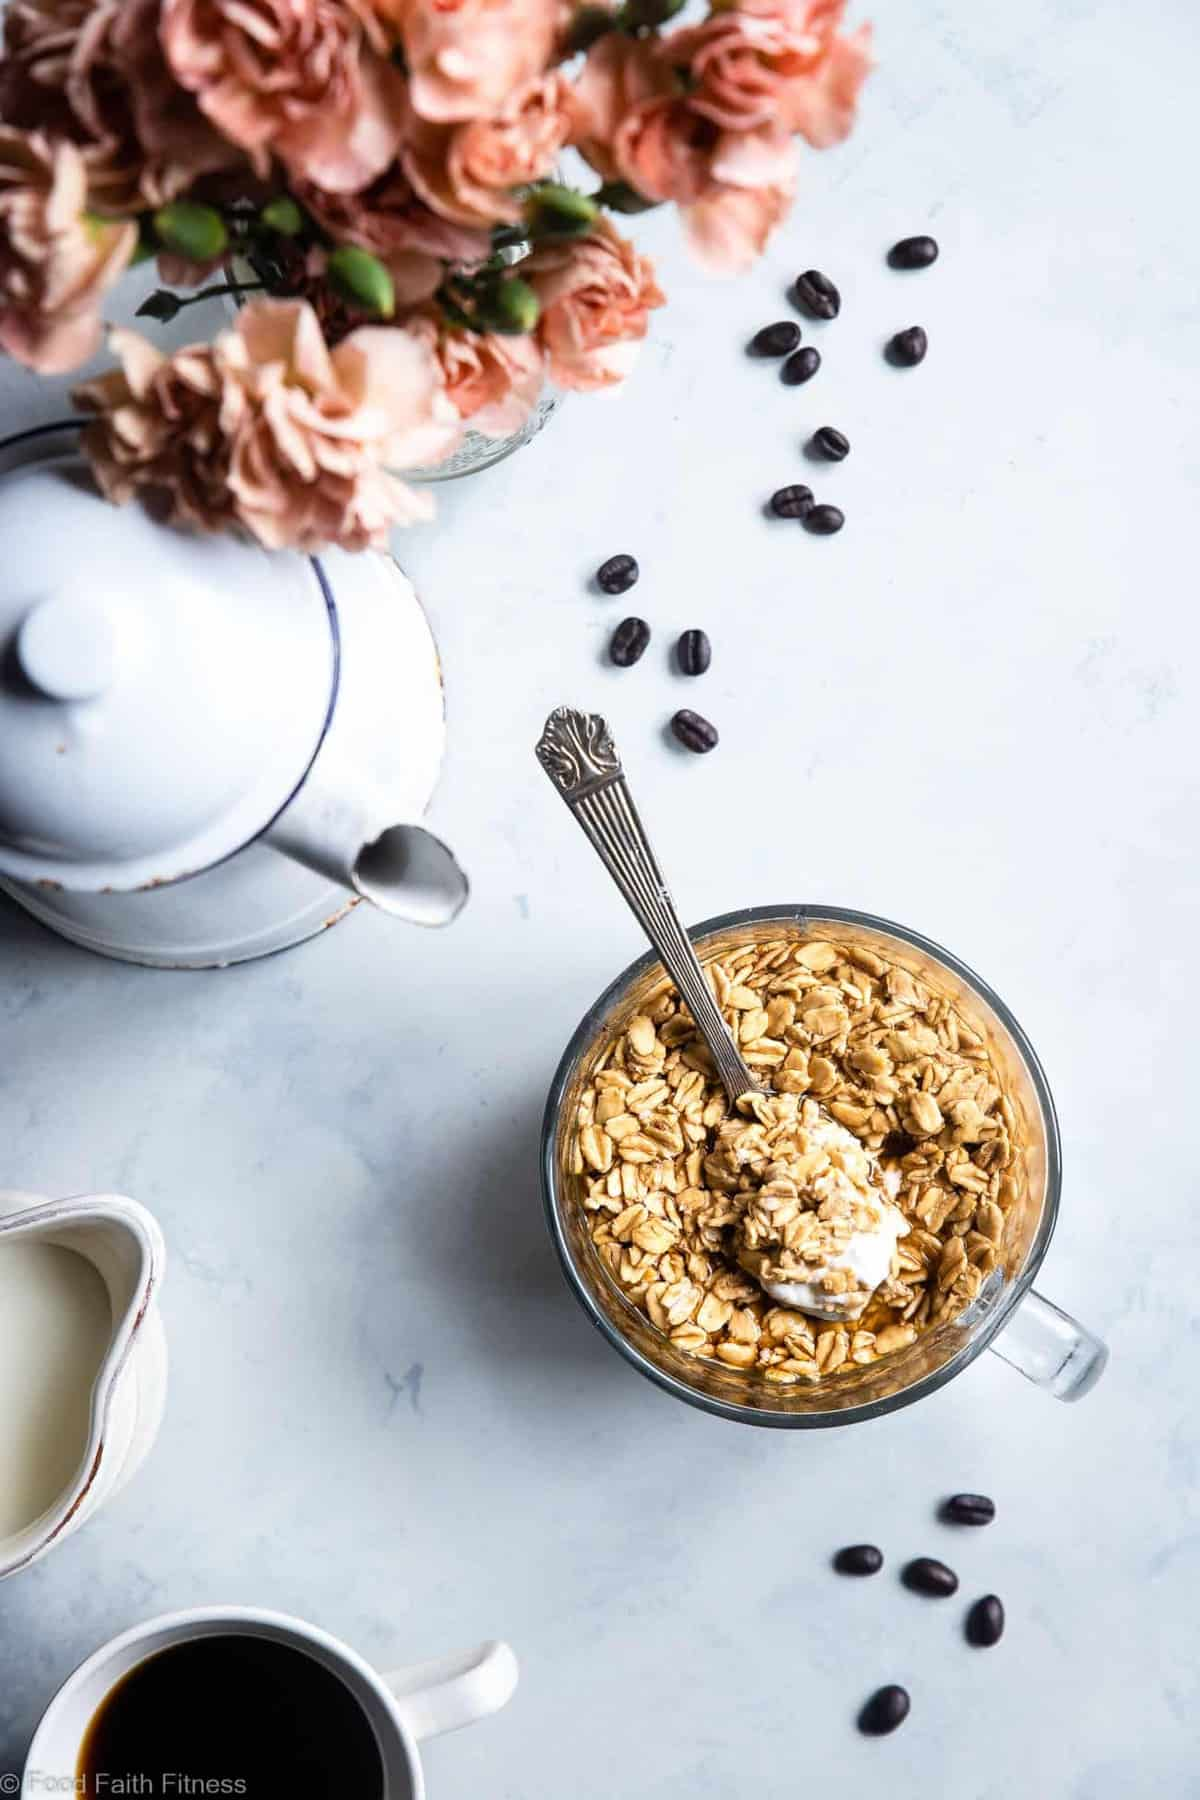 Vanilla Latte Overnight Oats - These gluten free overnight oats with Greek yogurt are a simple, 5 ingredient and protein packed way to start your day! Make them ahead for easy mornings! | #Foodfaithfitness |